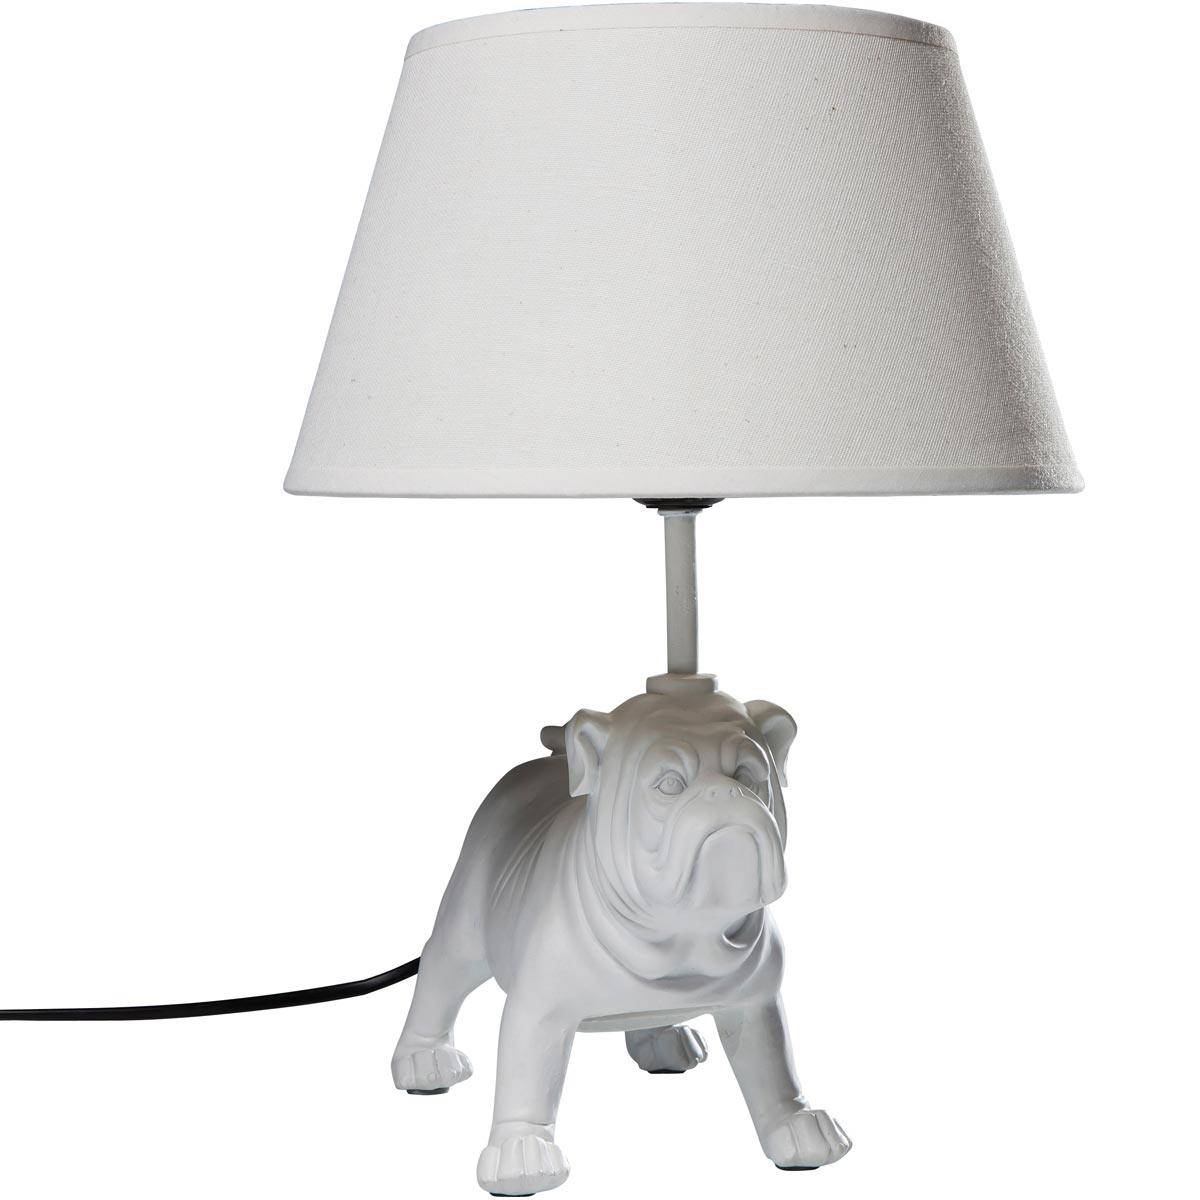 new white bouledogue table lamp table lamps lighting french bedroom company. Black Bedroom Furniture Sets. Home Design Ideas